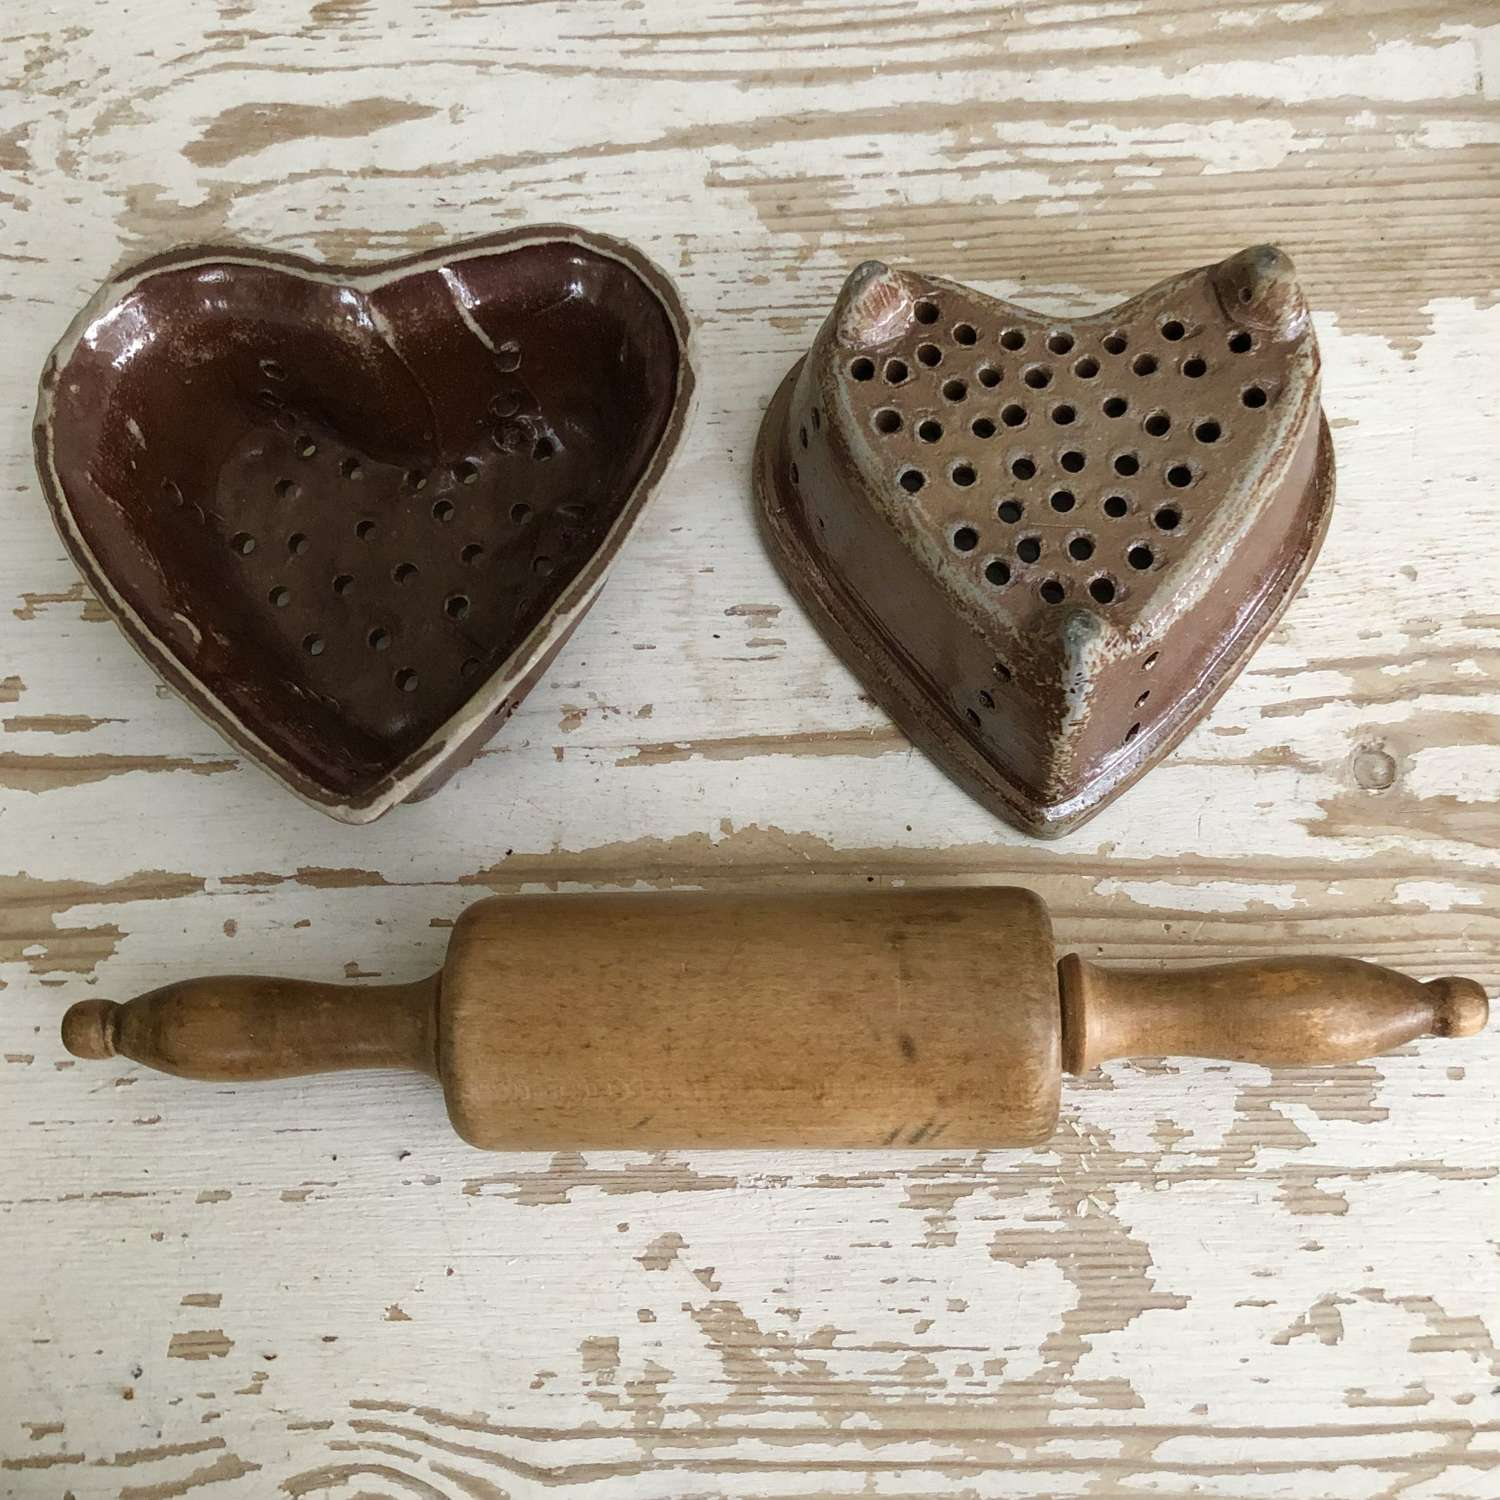 Heart Shaped Cheese Moulds